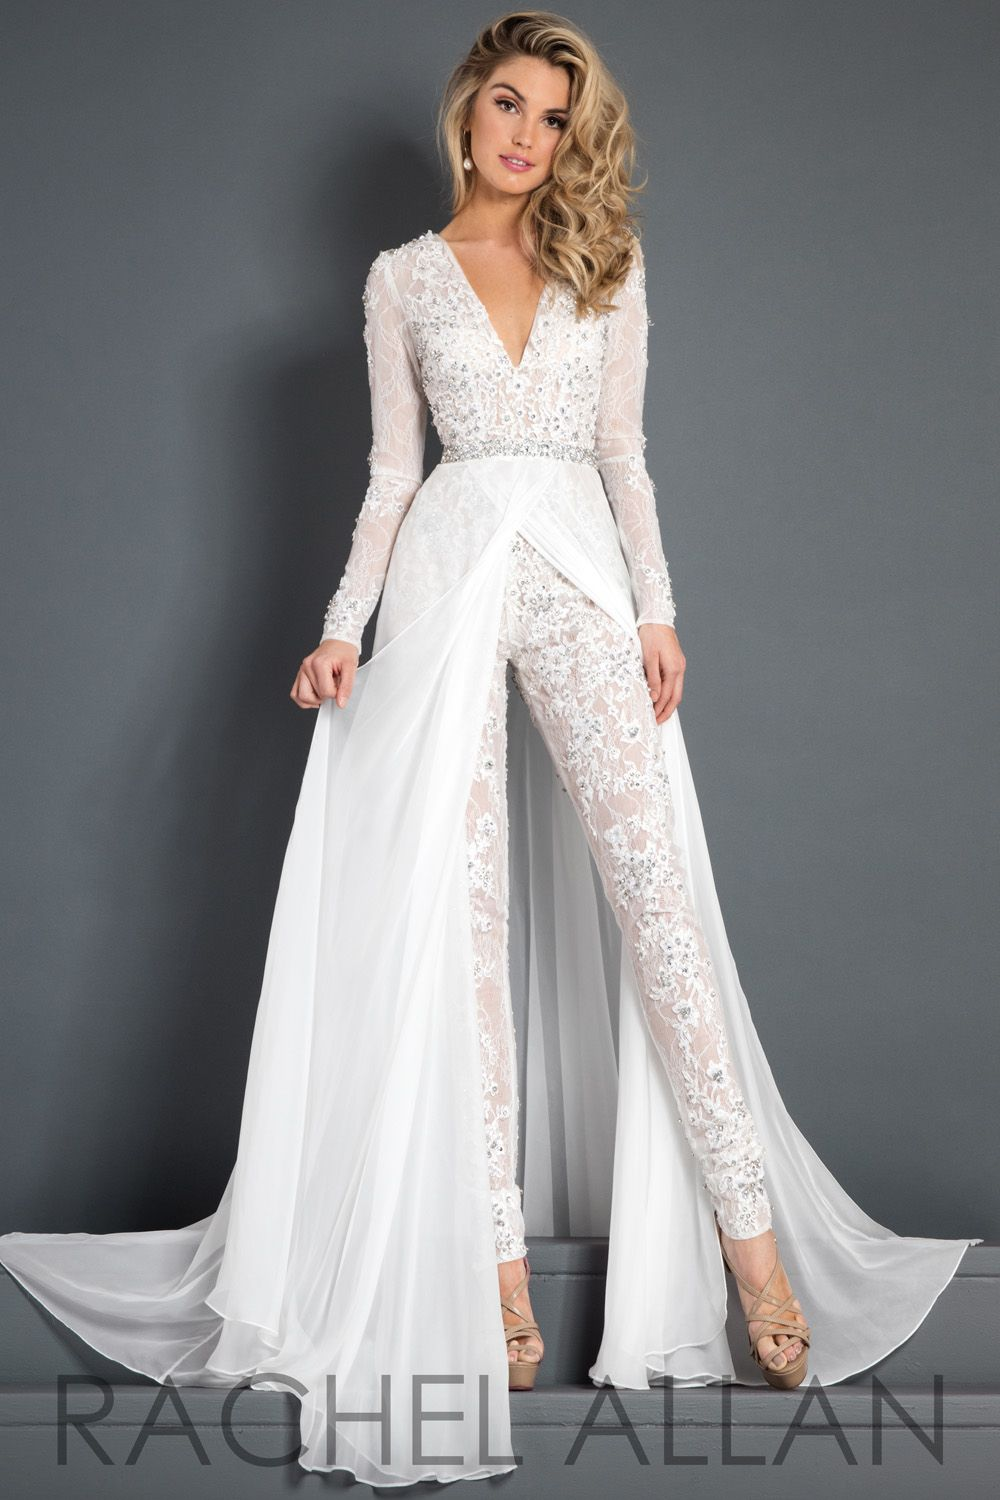 Rachel Allan 5995 Pageant Dresses Pinterest Wedding Dresses